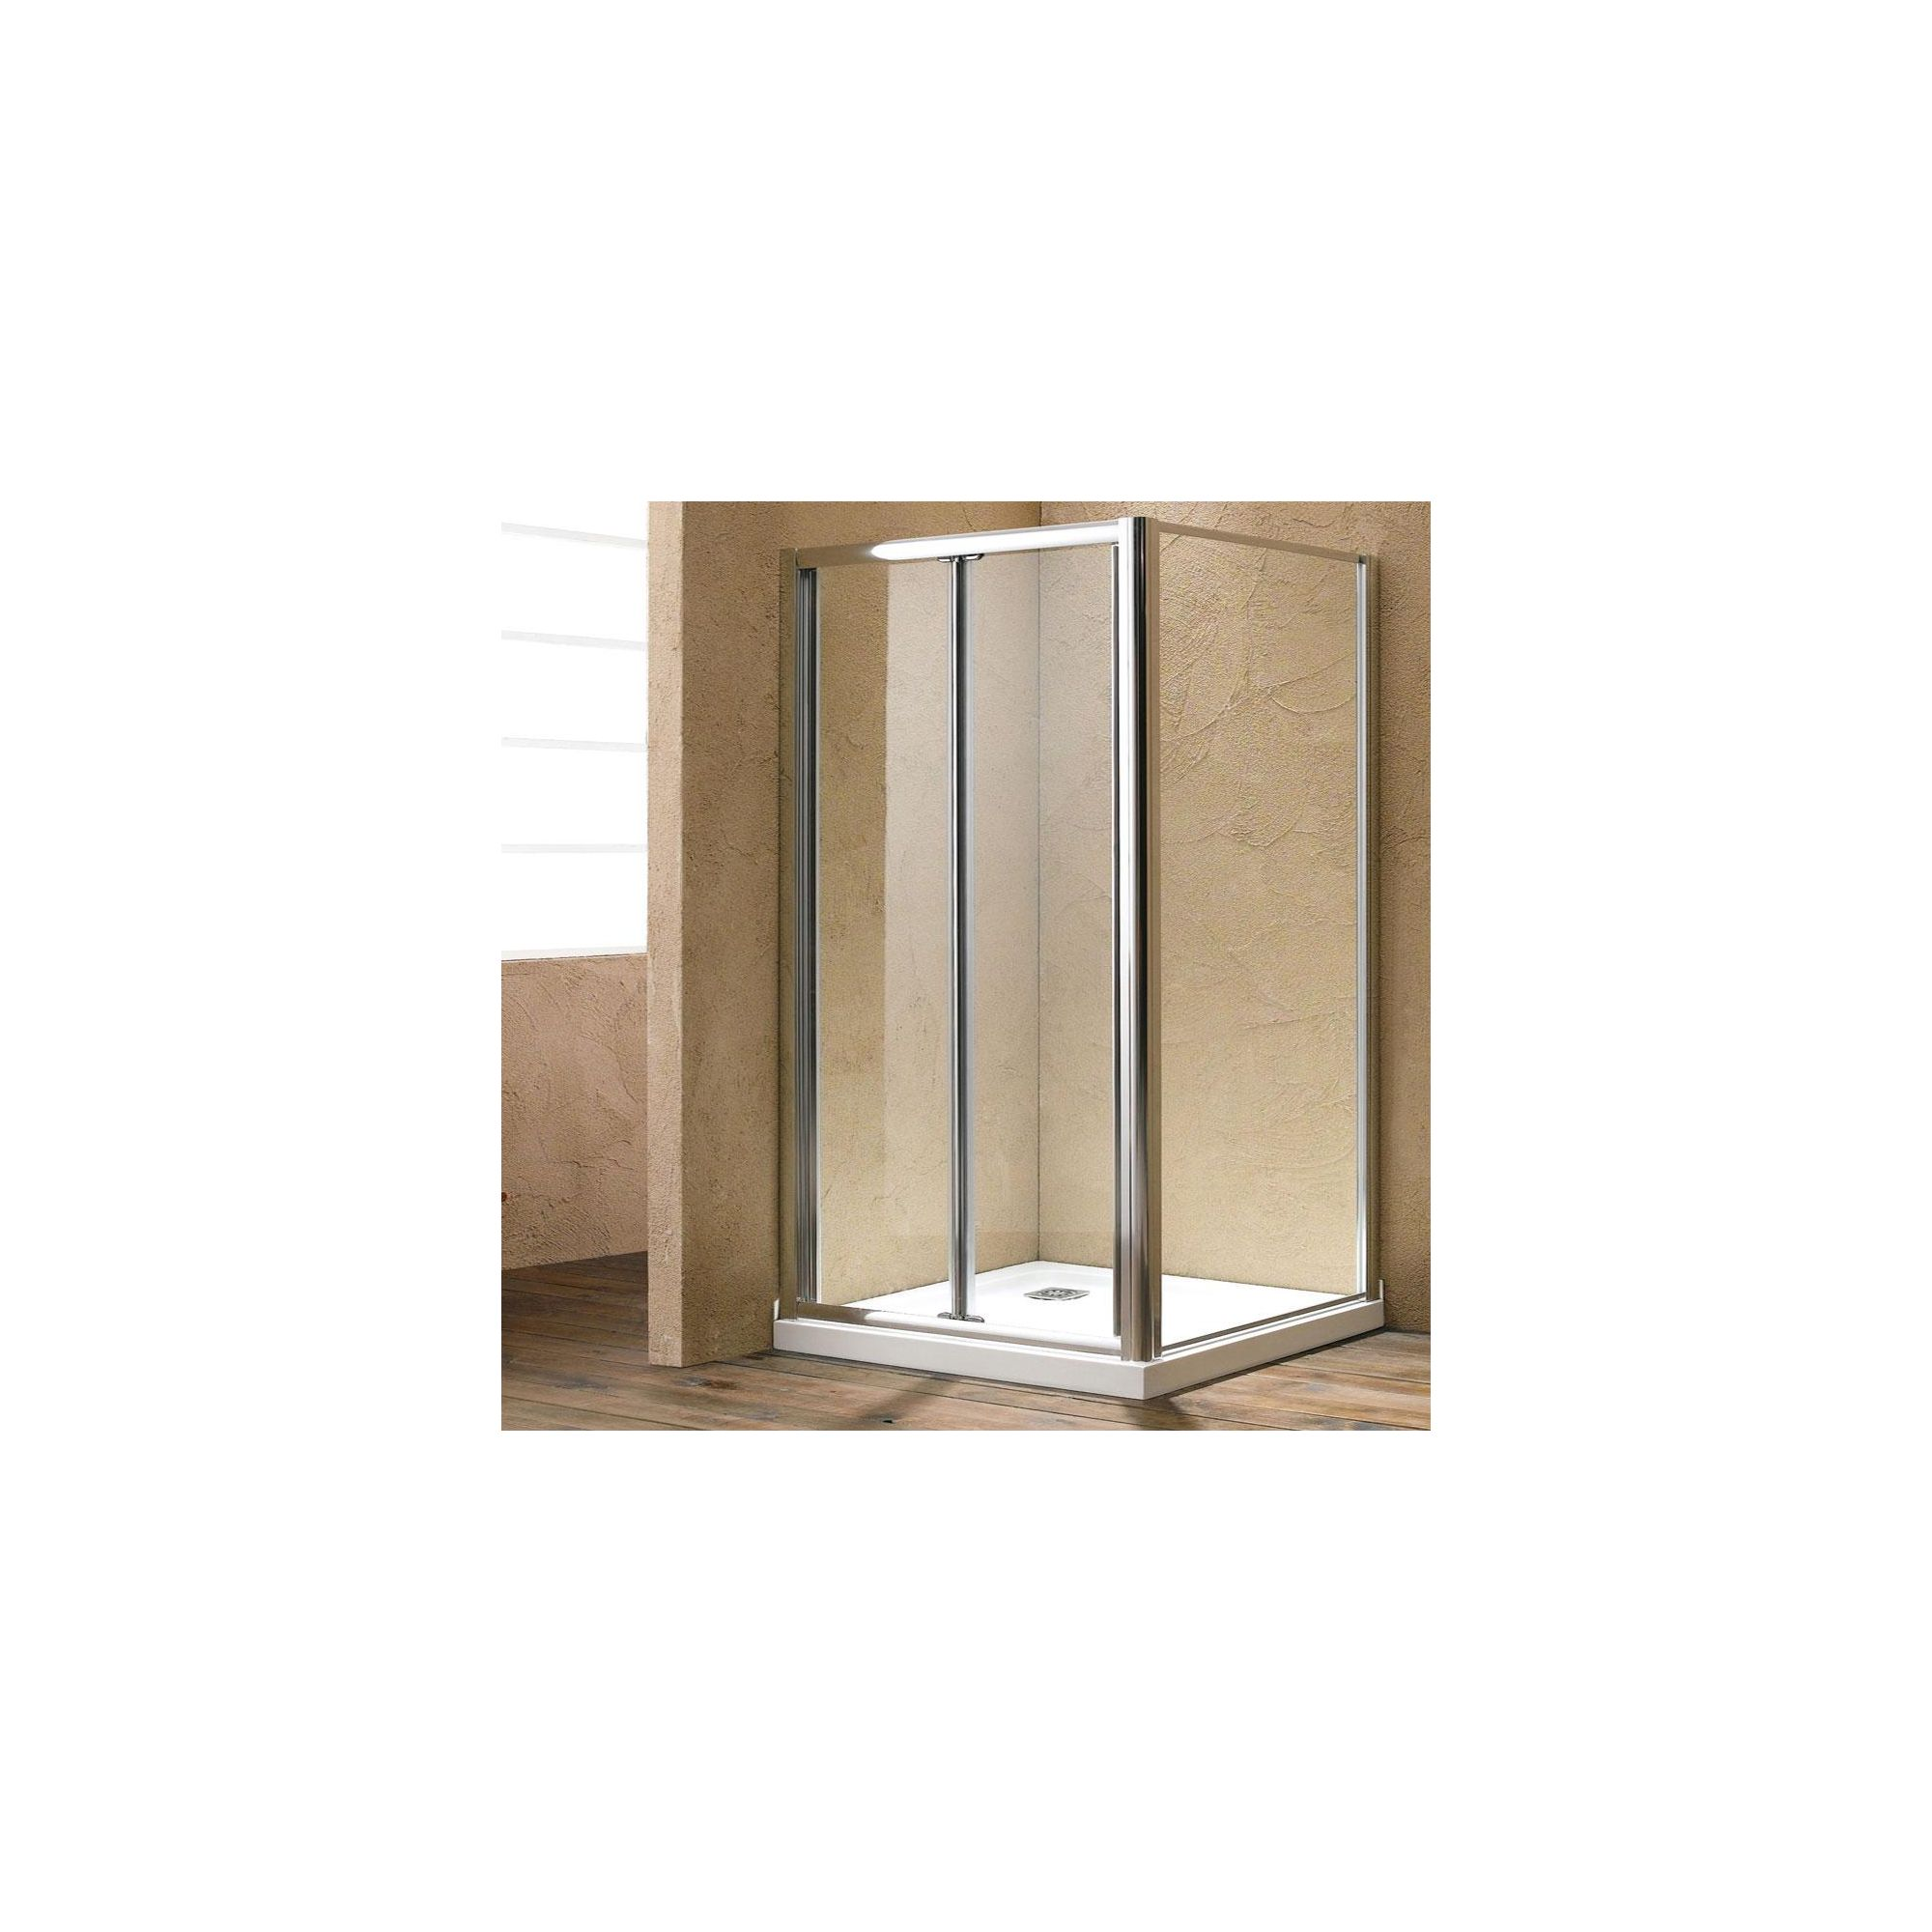 Duchy Style Single Bi-Fold Door Shower Enclosure, 800mm x 800mm, 6mm Glass, Low Profile Tray at Tesco Direct